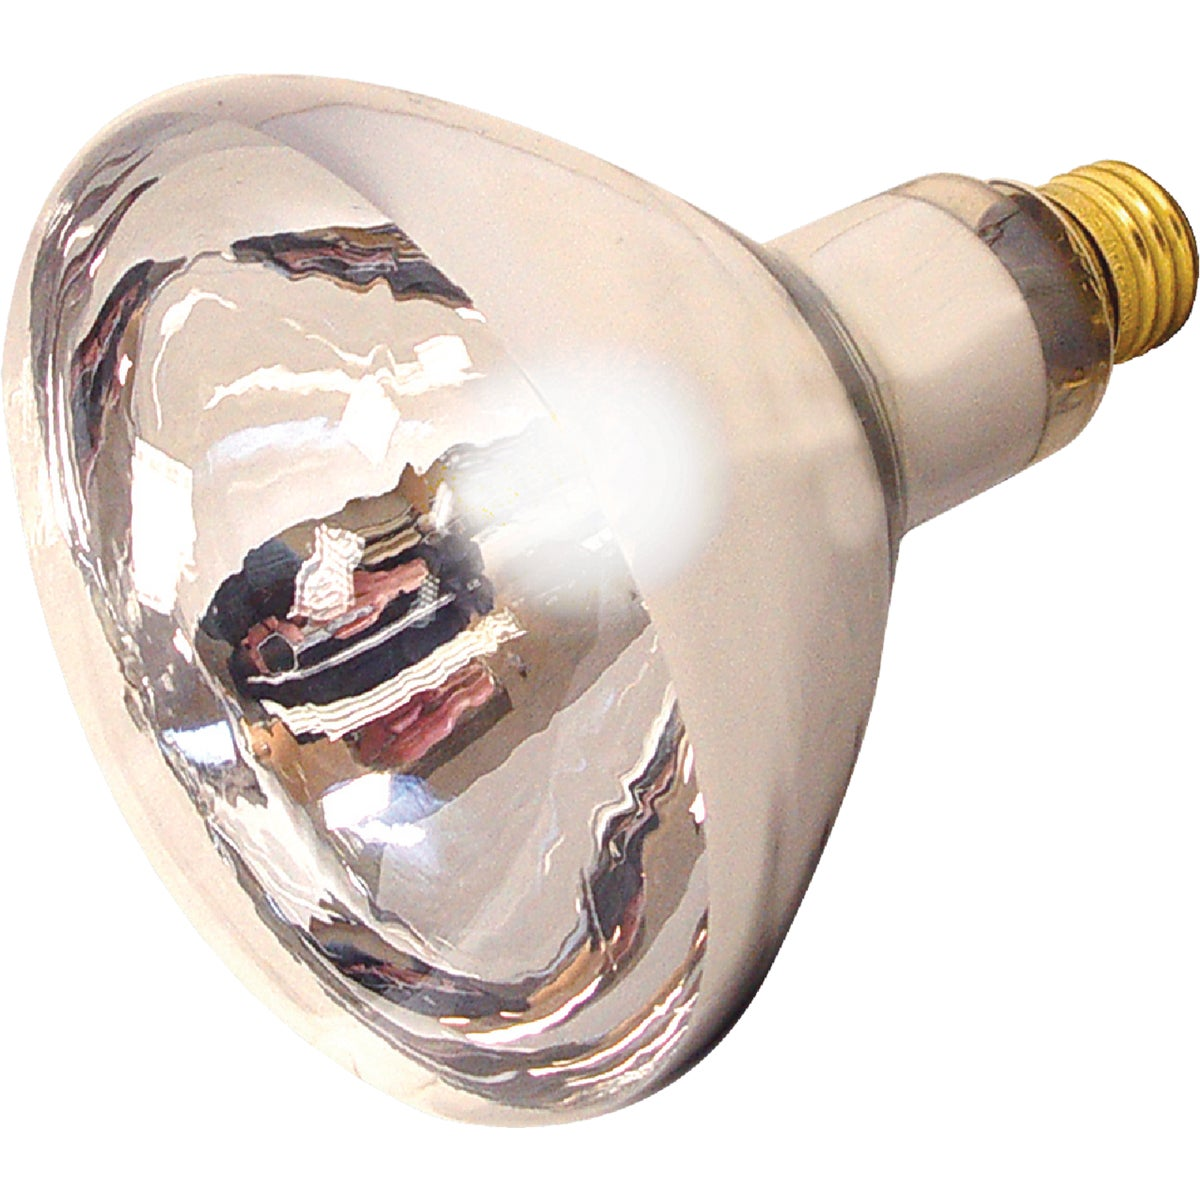 125W HEAT/BROODER BULB - 03918 by Westinghouse Lightng